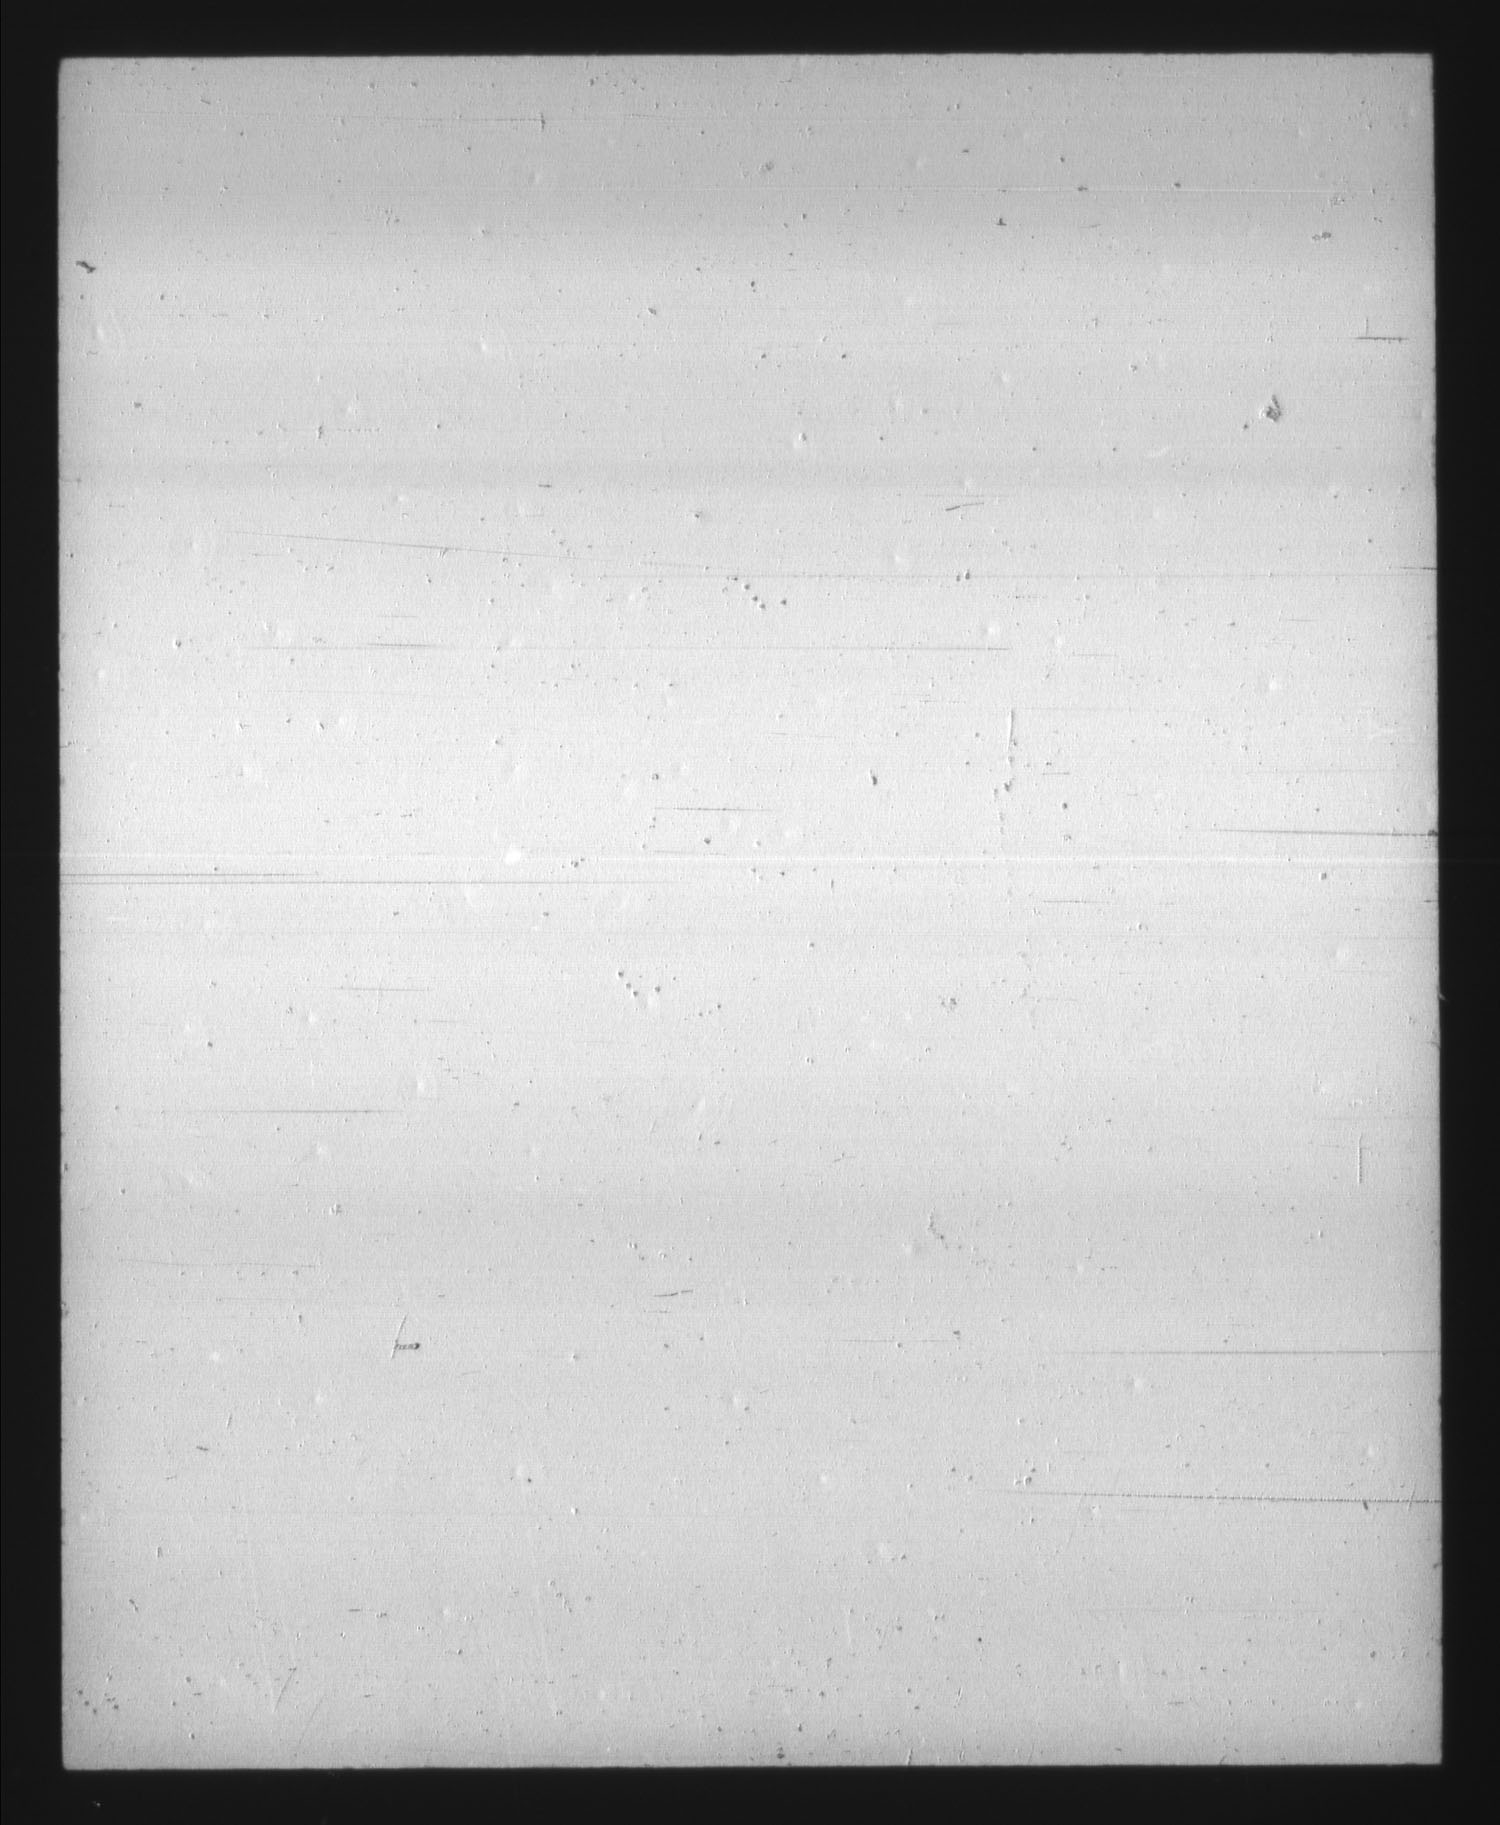 Title: War of 1812: Miscellaneous Records - Mikan Number:  - Microform: h-1346